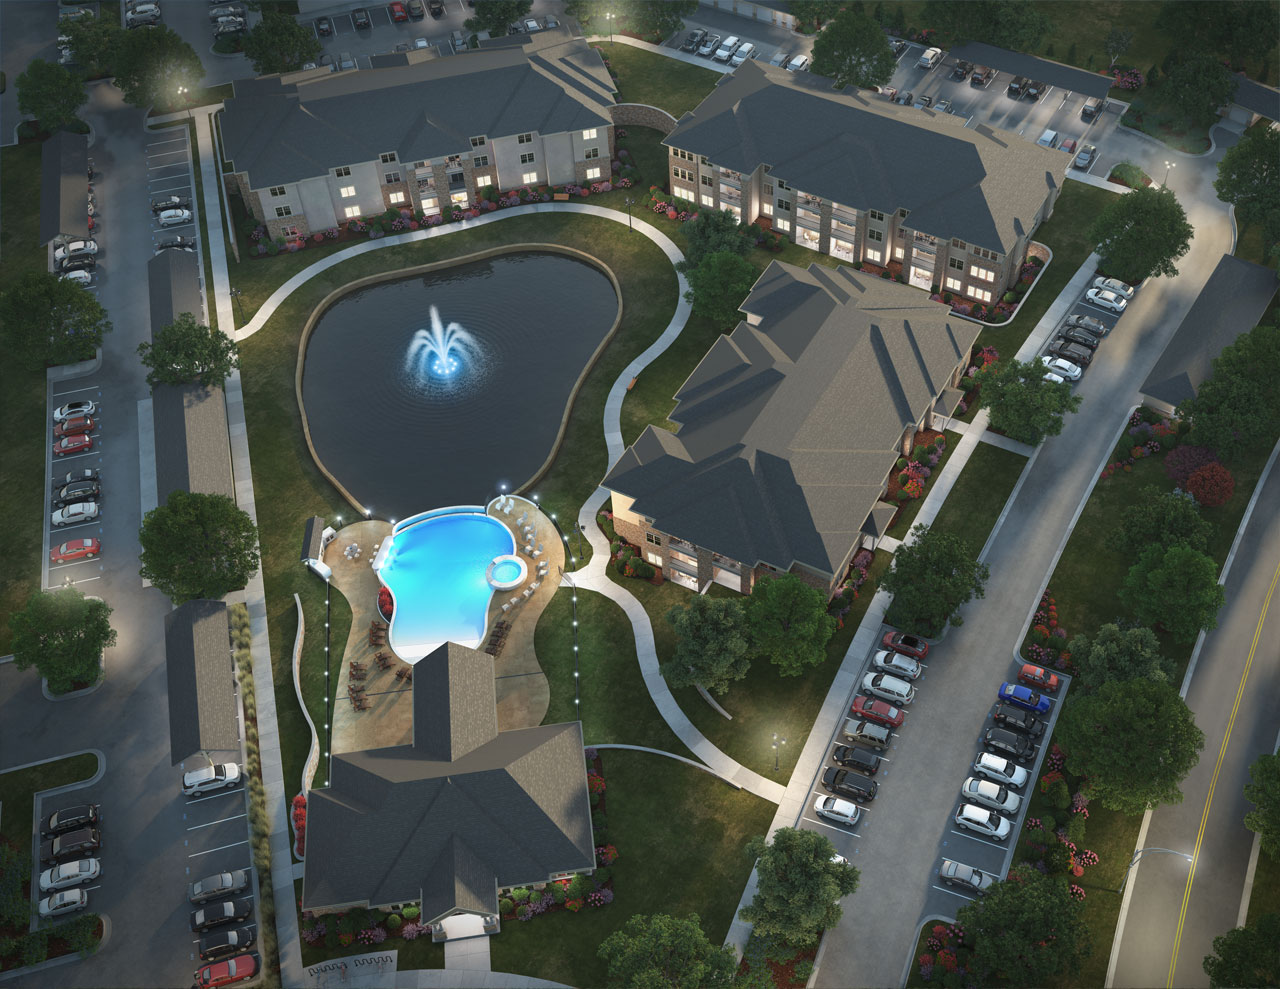 Aerial rendering of an apartment complex including swimming pool and water feature.